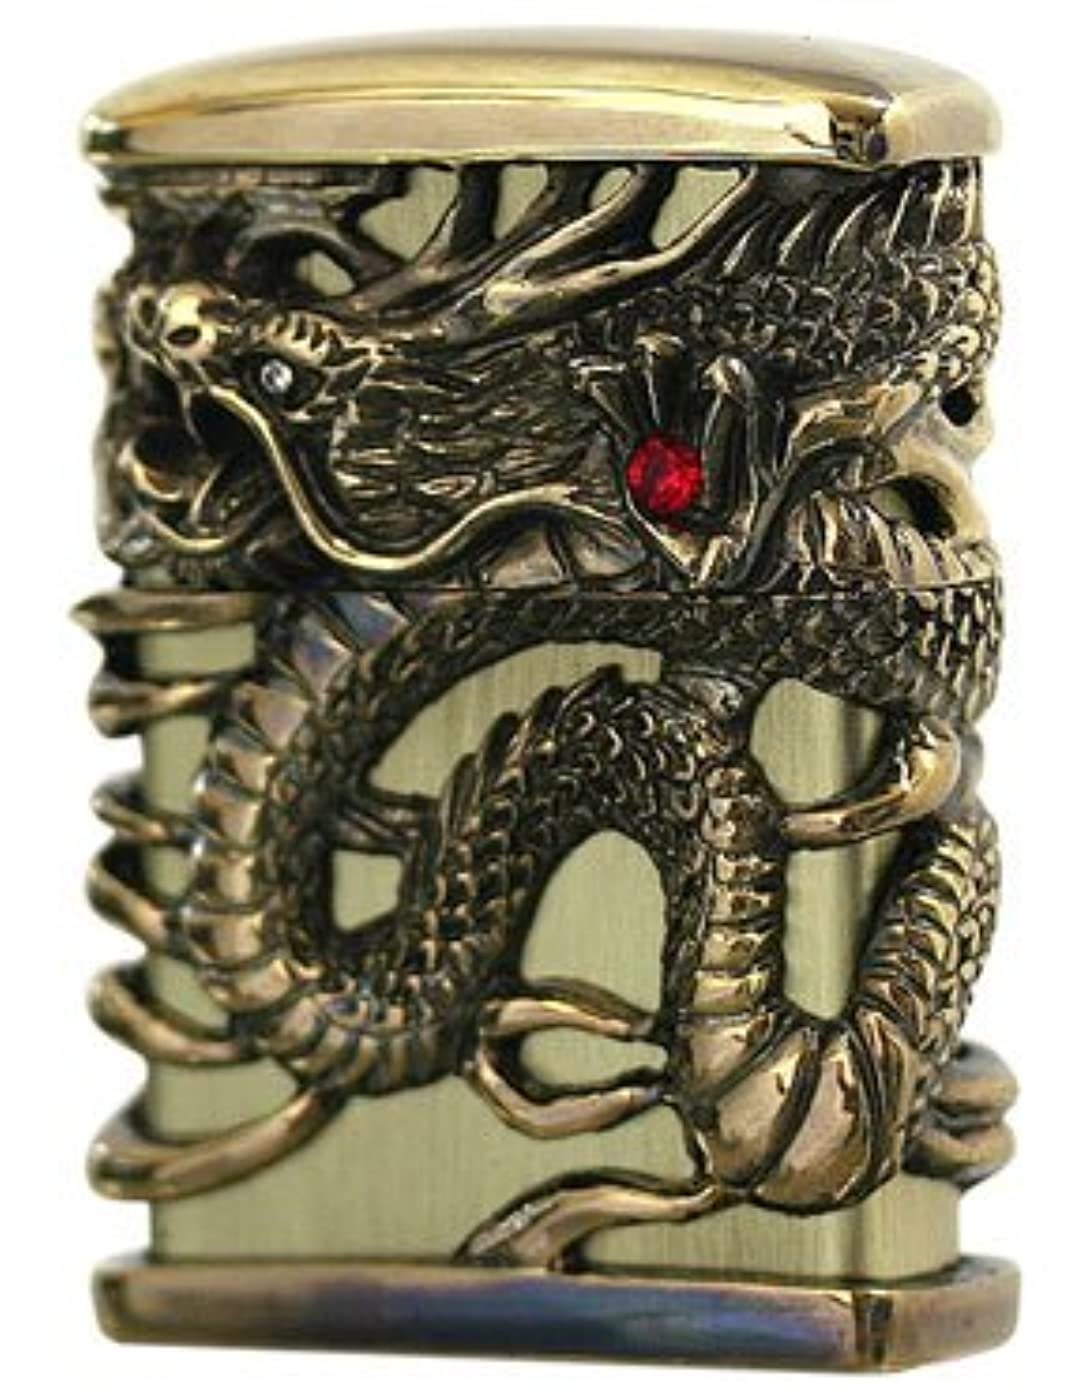 ZIPPO Oil lighter Celestial Dragon Brass Gold Full Metal Jacket Japan Tenryu